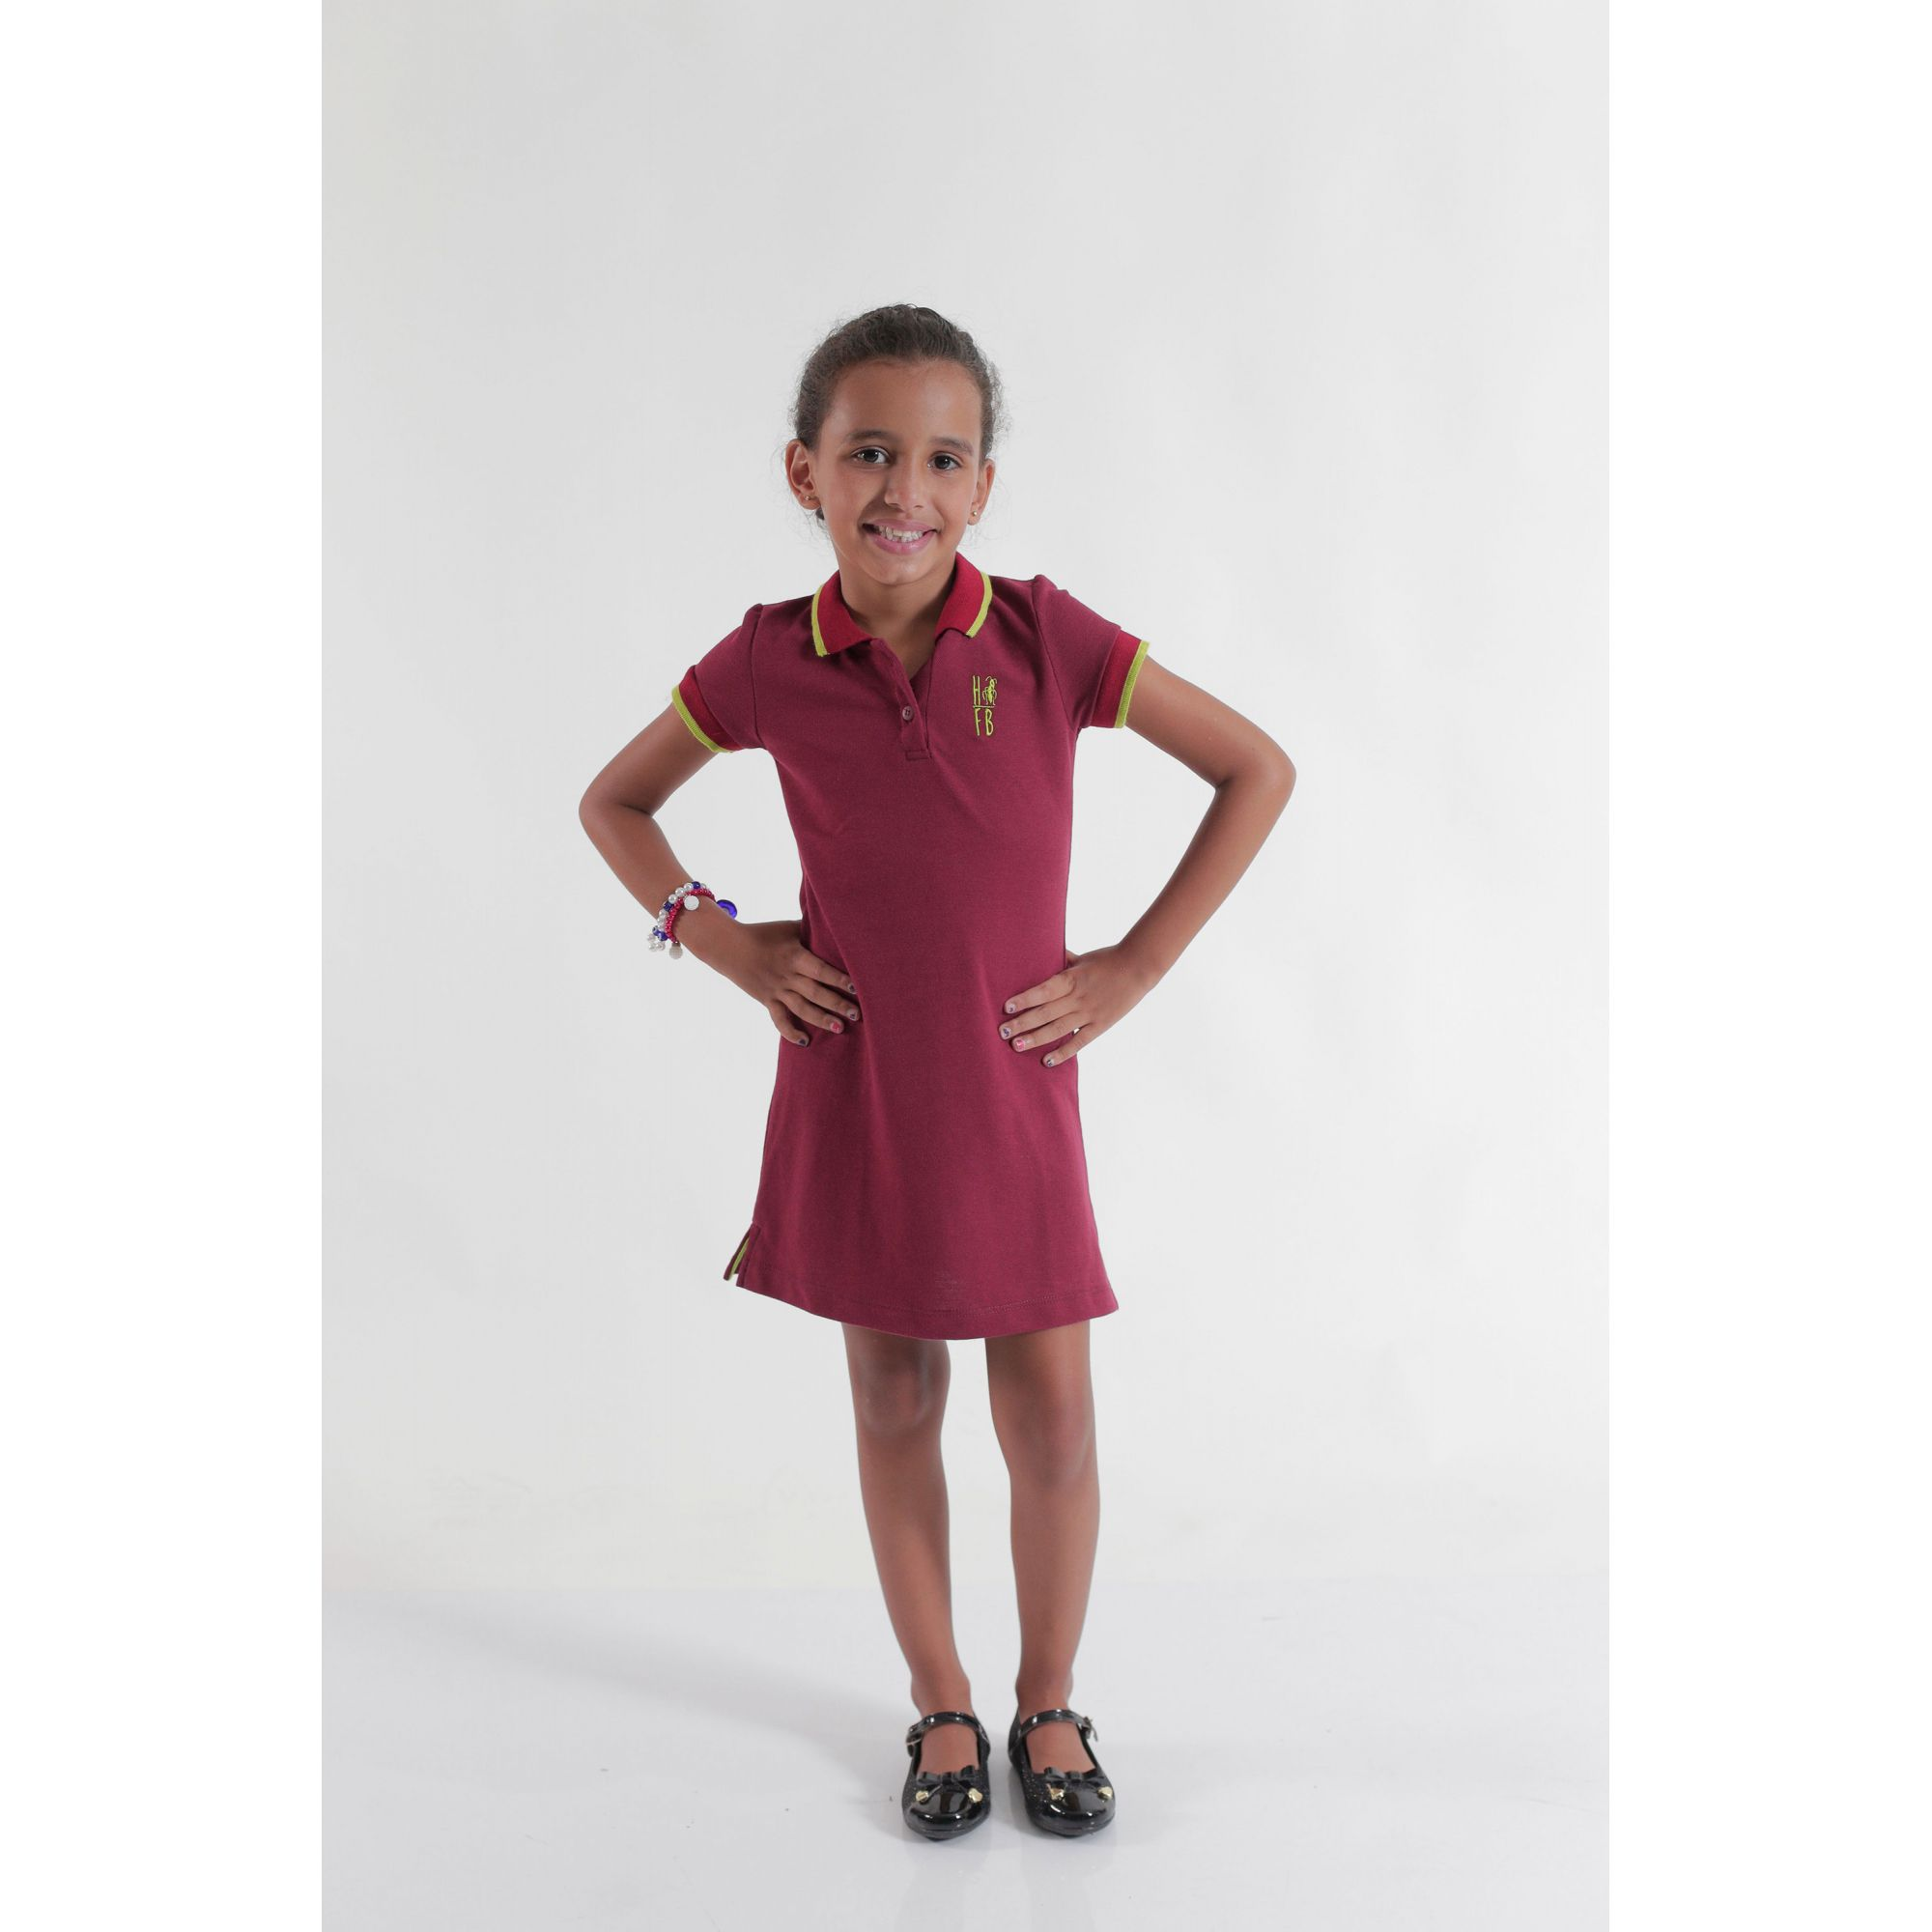 Vestido Polo Infantil Bordo  - Heitor Fashion Brazil